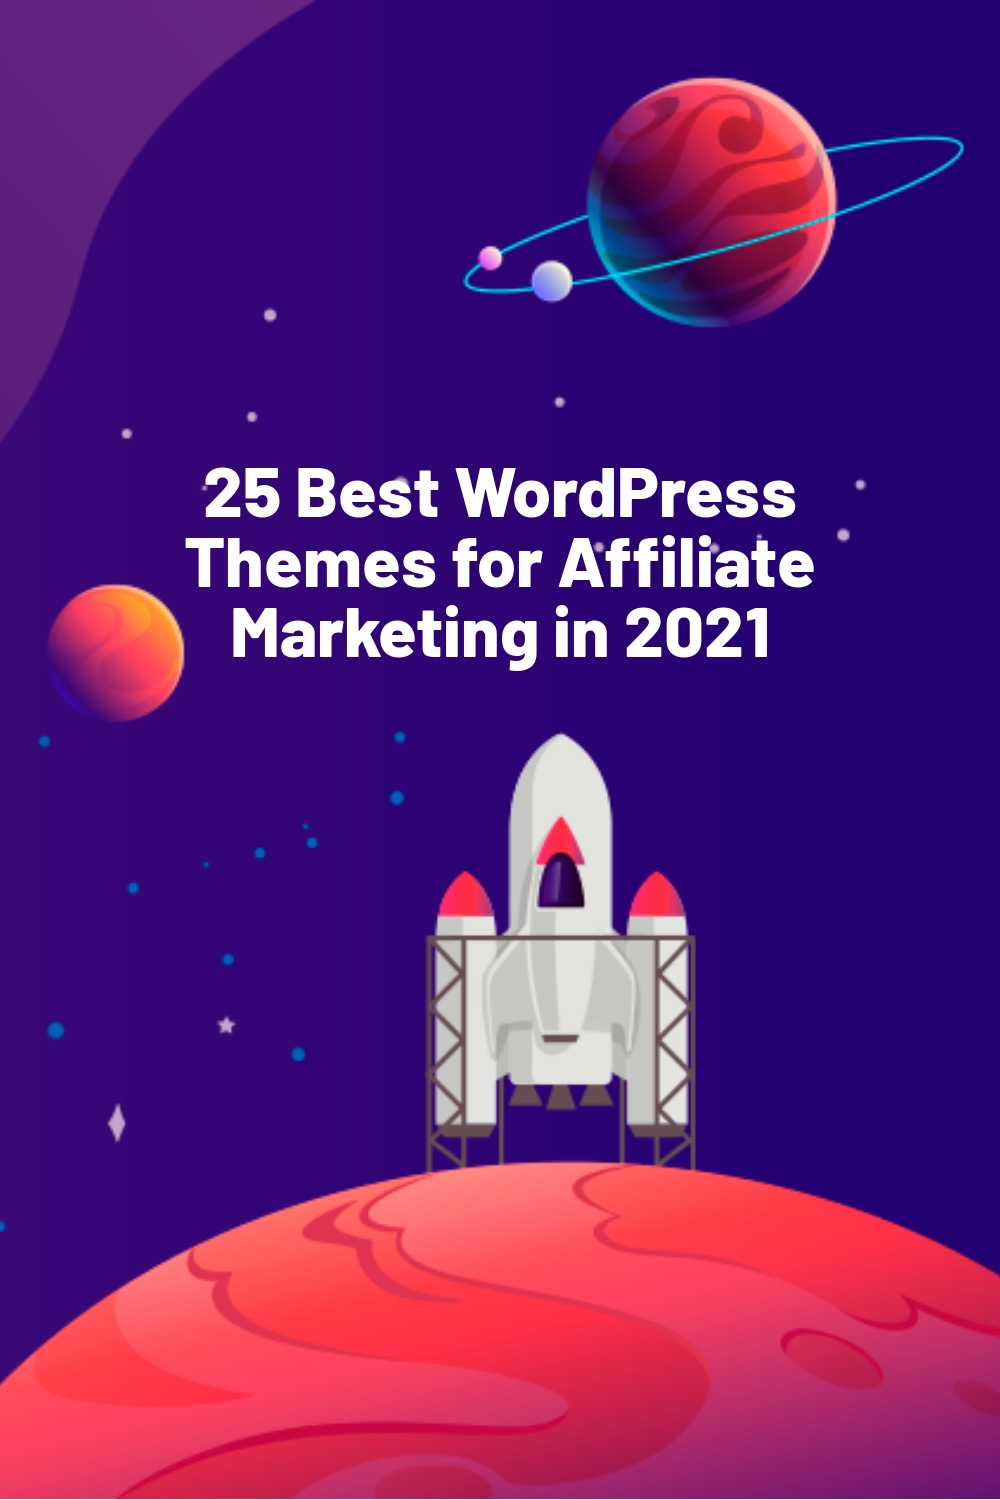 25 Best WordPress Themes for Affiliate Marketing in 2021